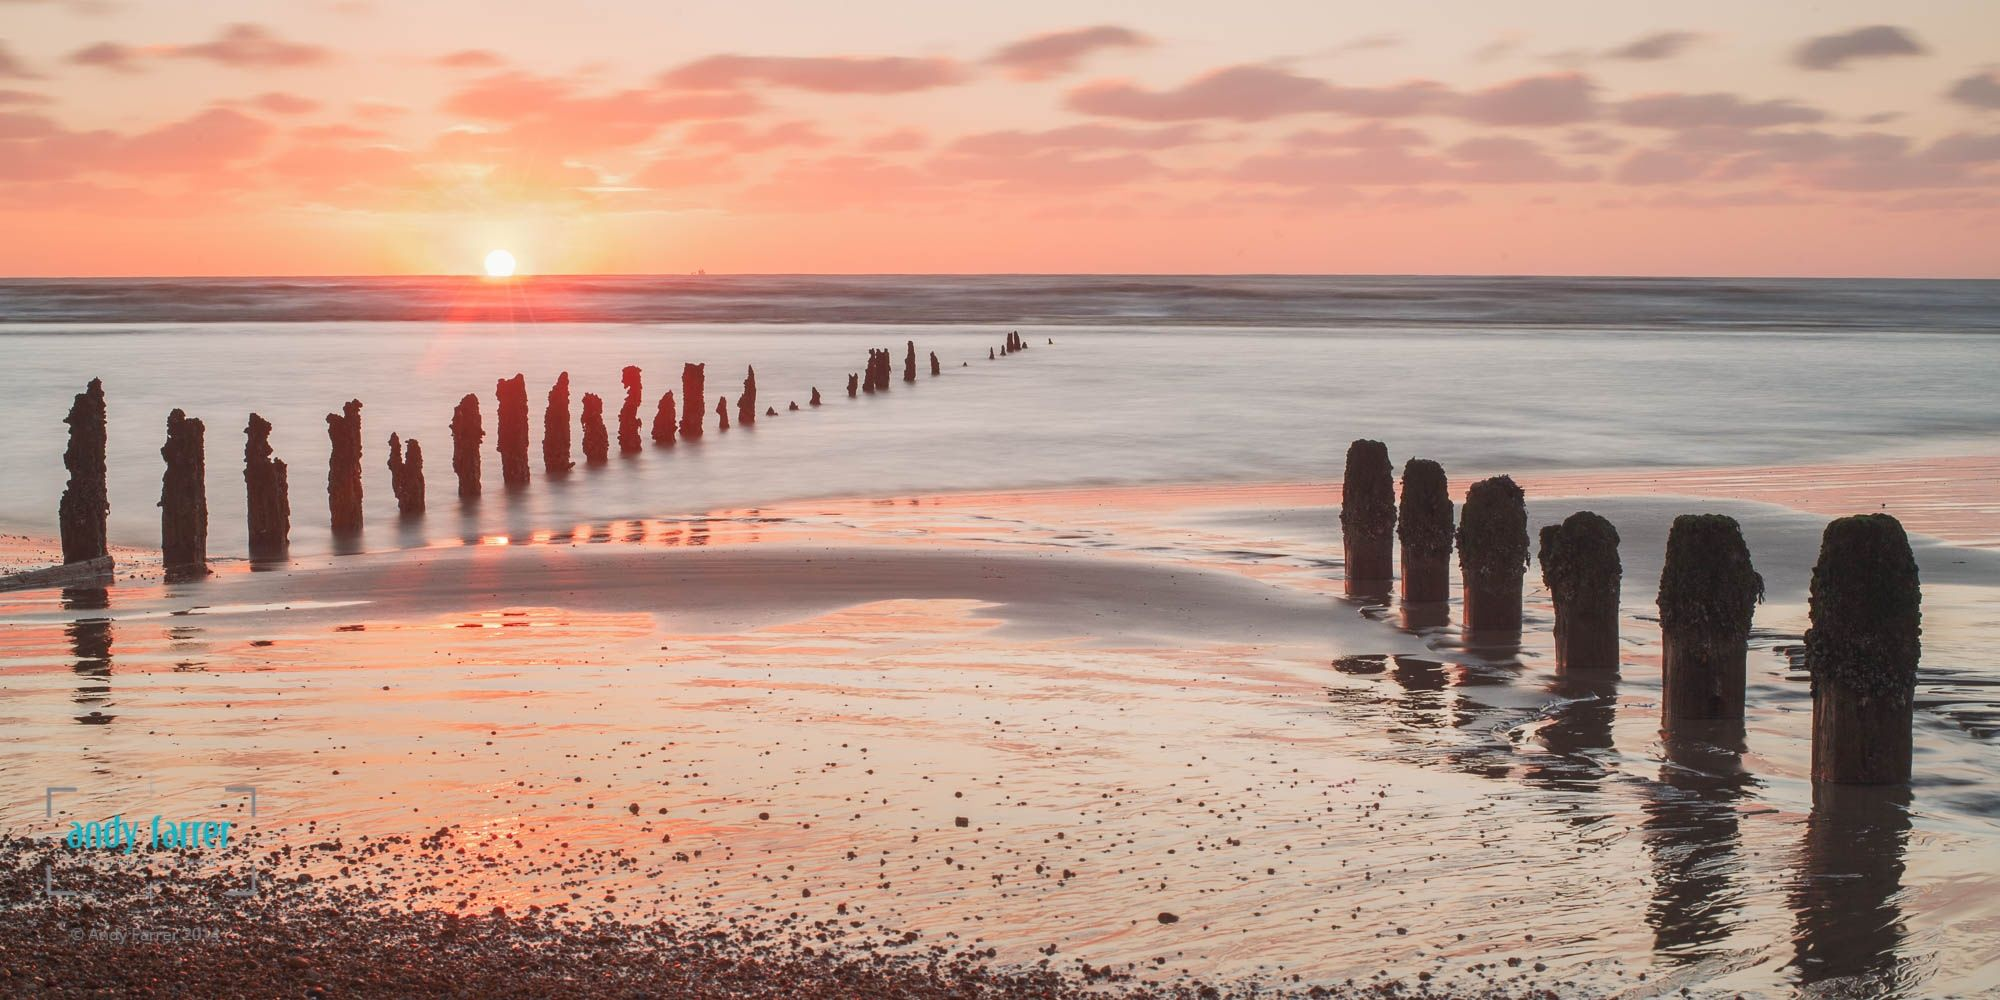 Winchelsea by Andy Farrer on 500px